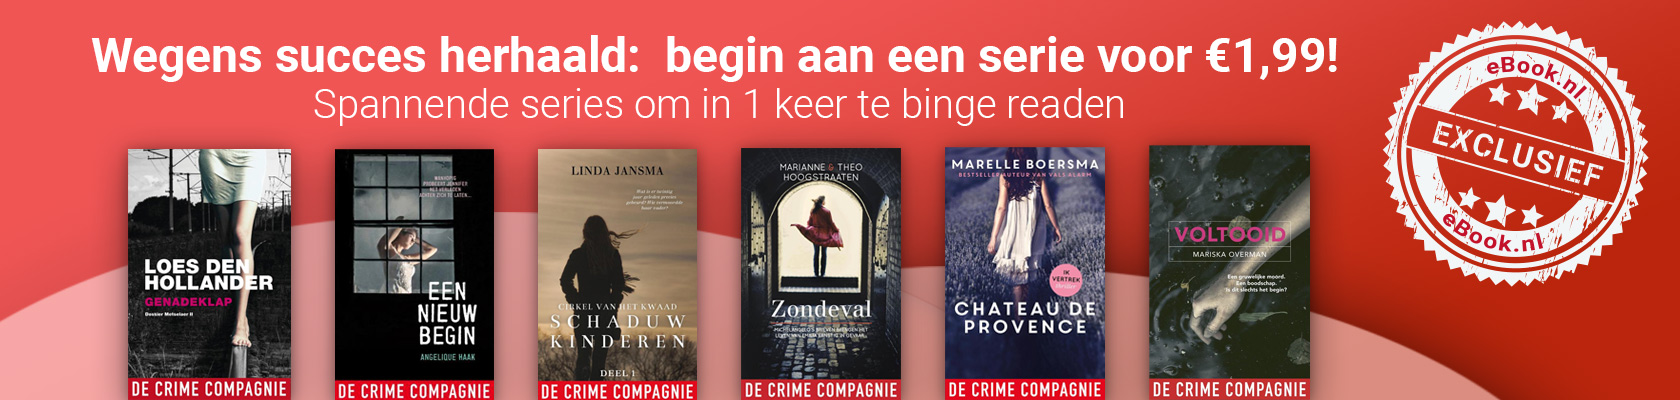 Spannende series om in 1 keer te binge readen